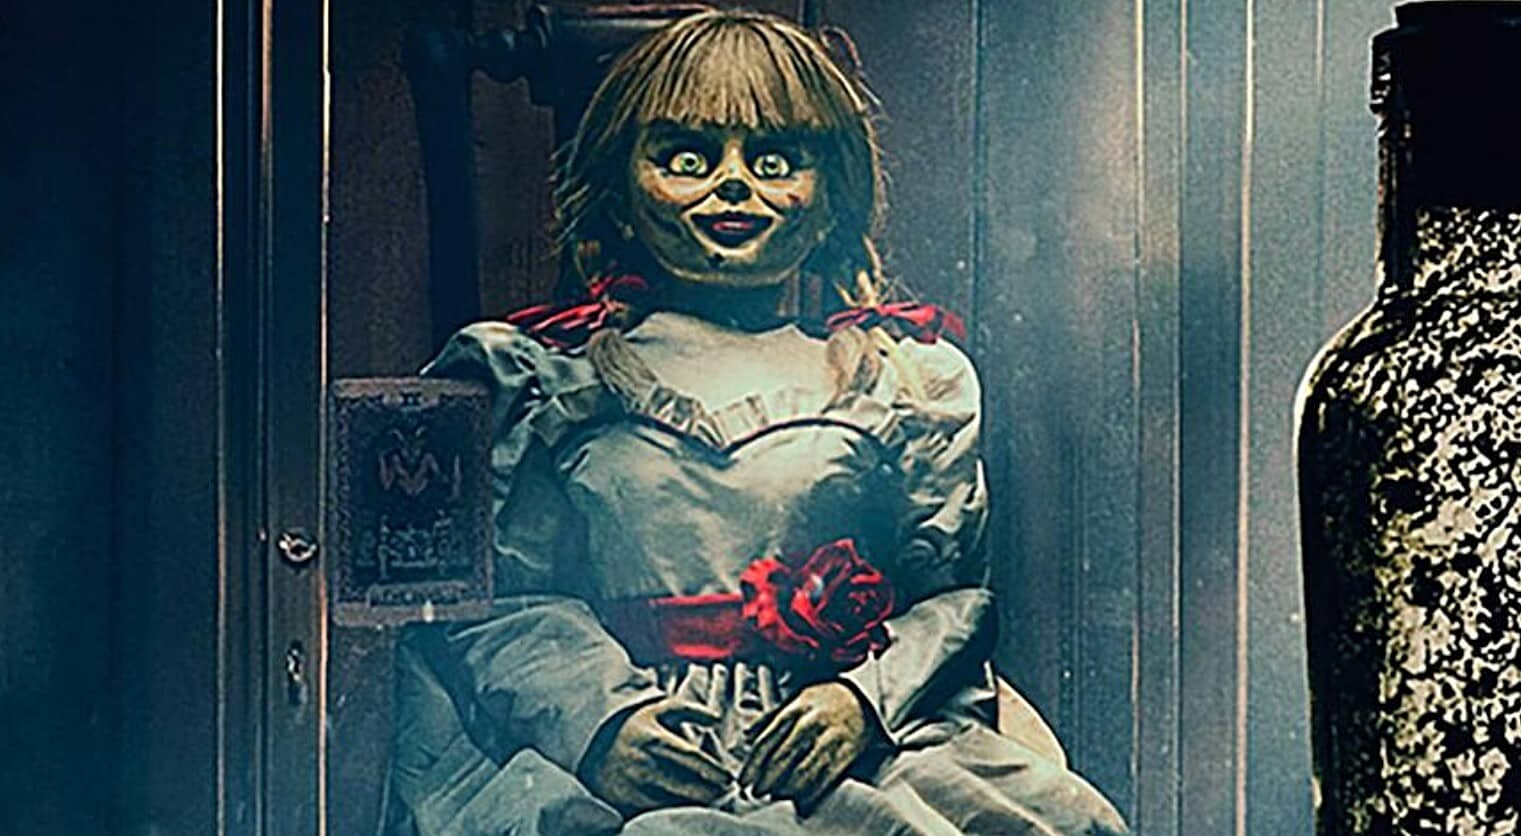 'Annabelle Comes Home' trailer shows killer doll in creepy new way